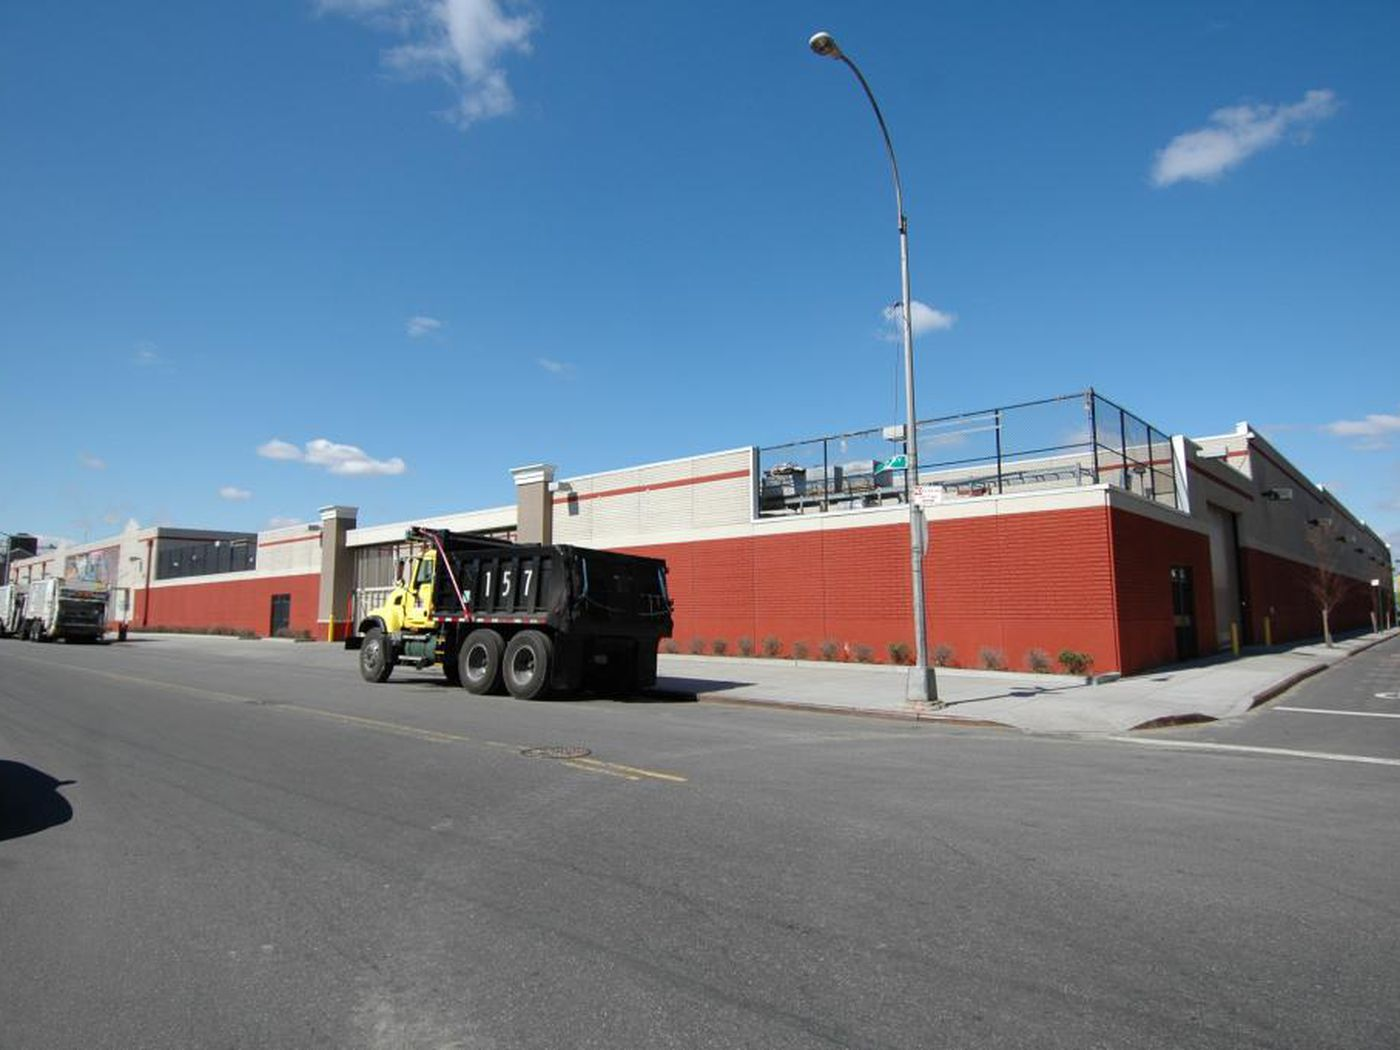 Two Trees Buys Gowanus Lowe S Site Potentially Setting Up Rezoning Fight Curbed Ny